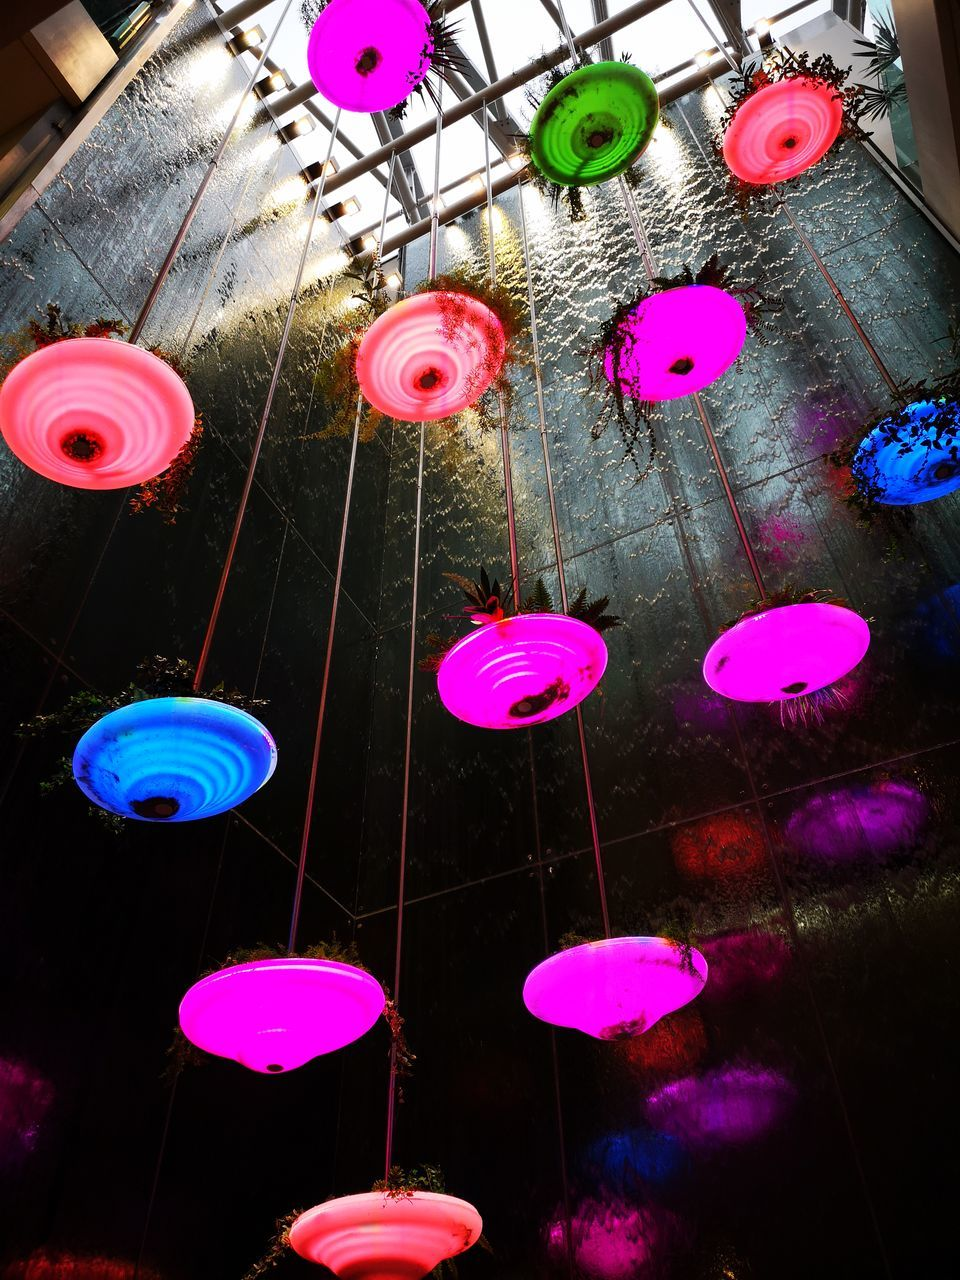 LOW ANGLE VIEW OF MULTI COLORED LIGHTS HANGING